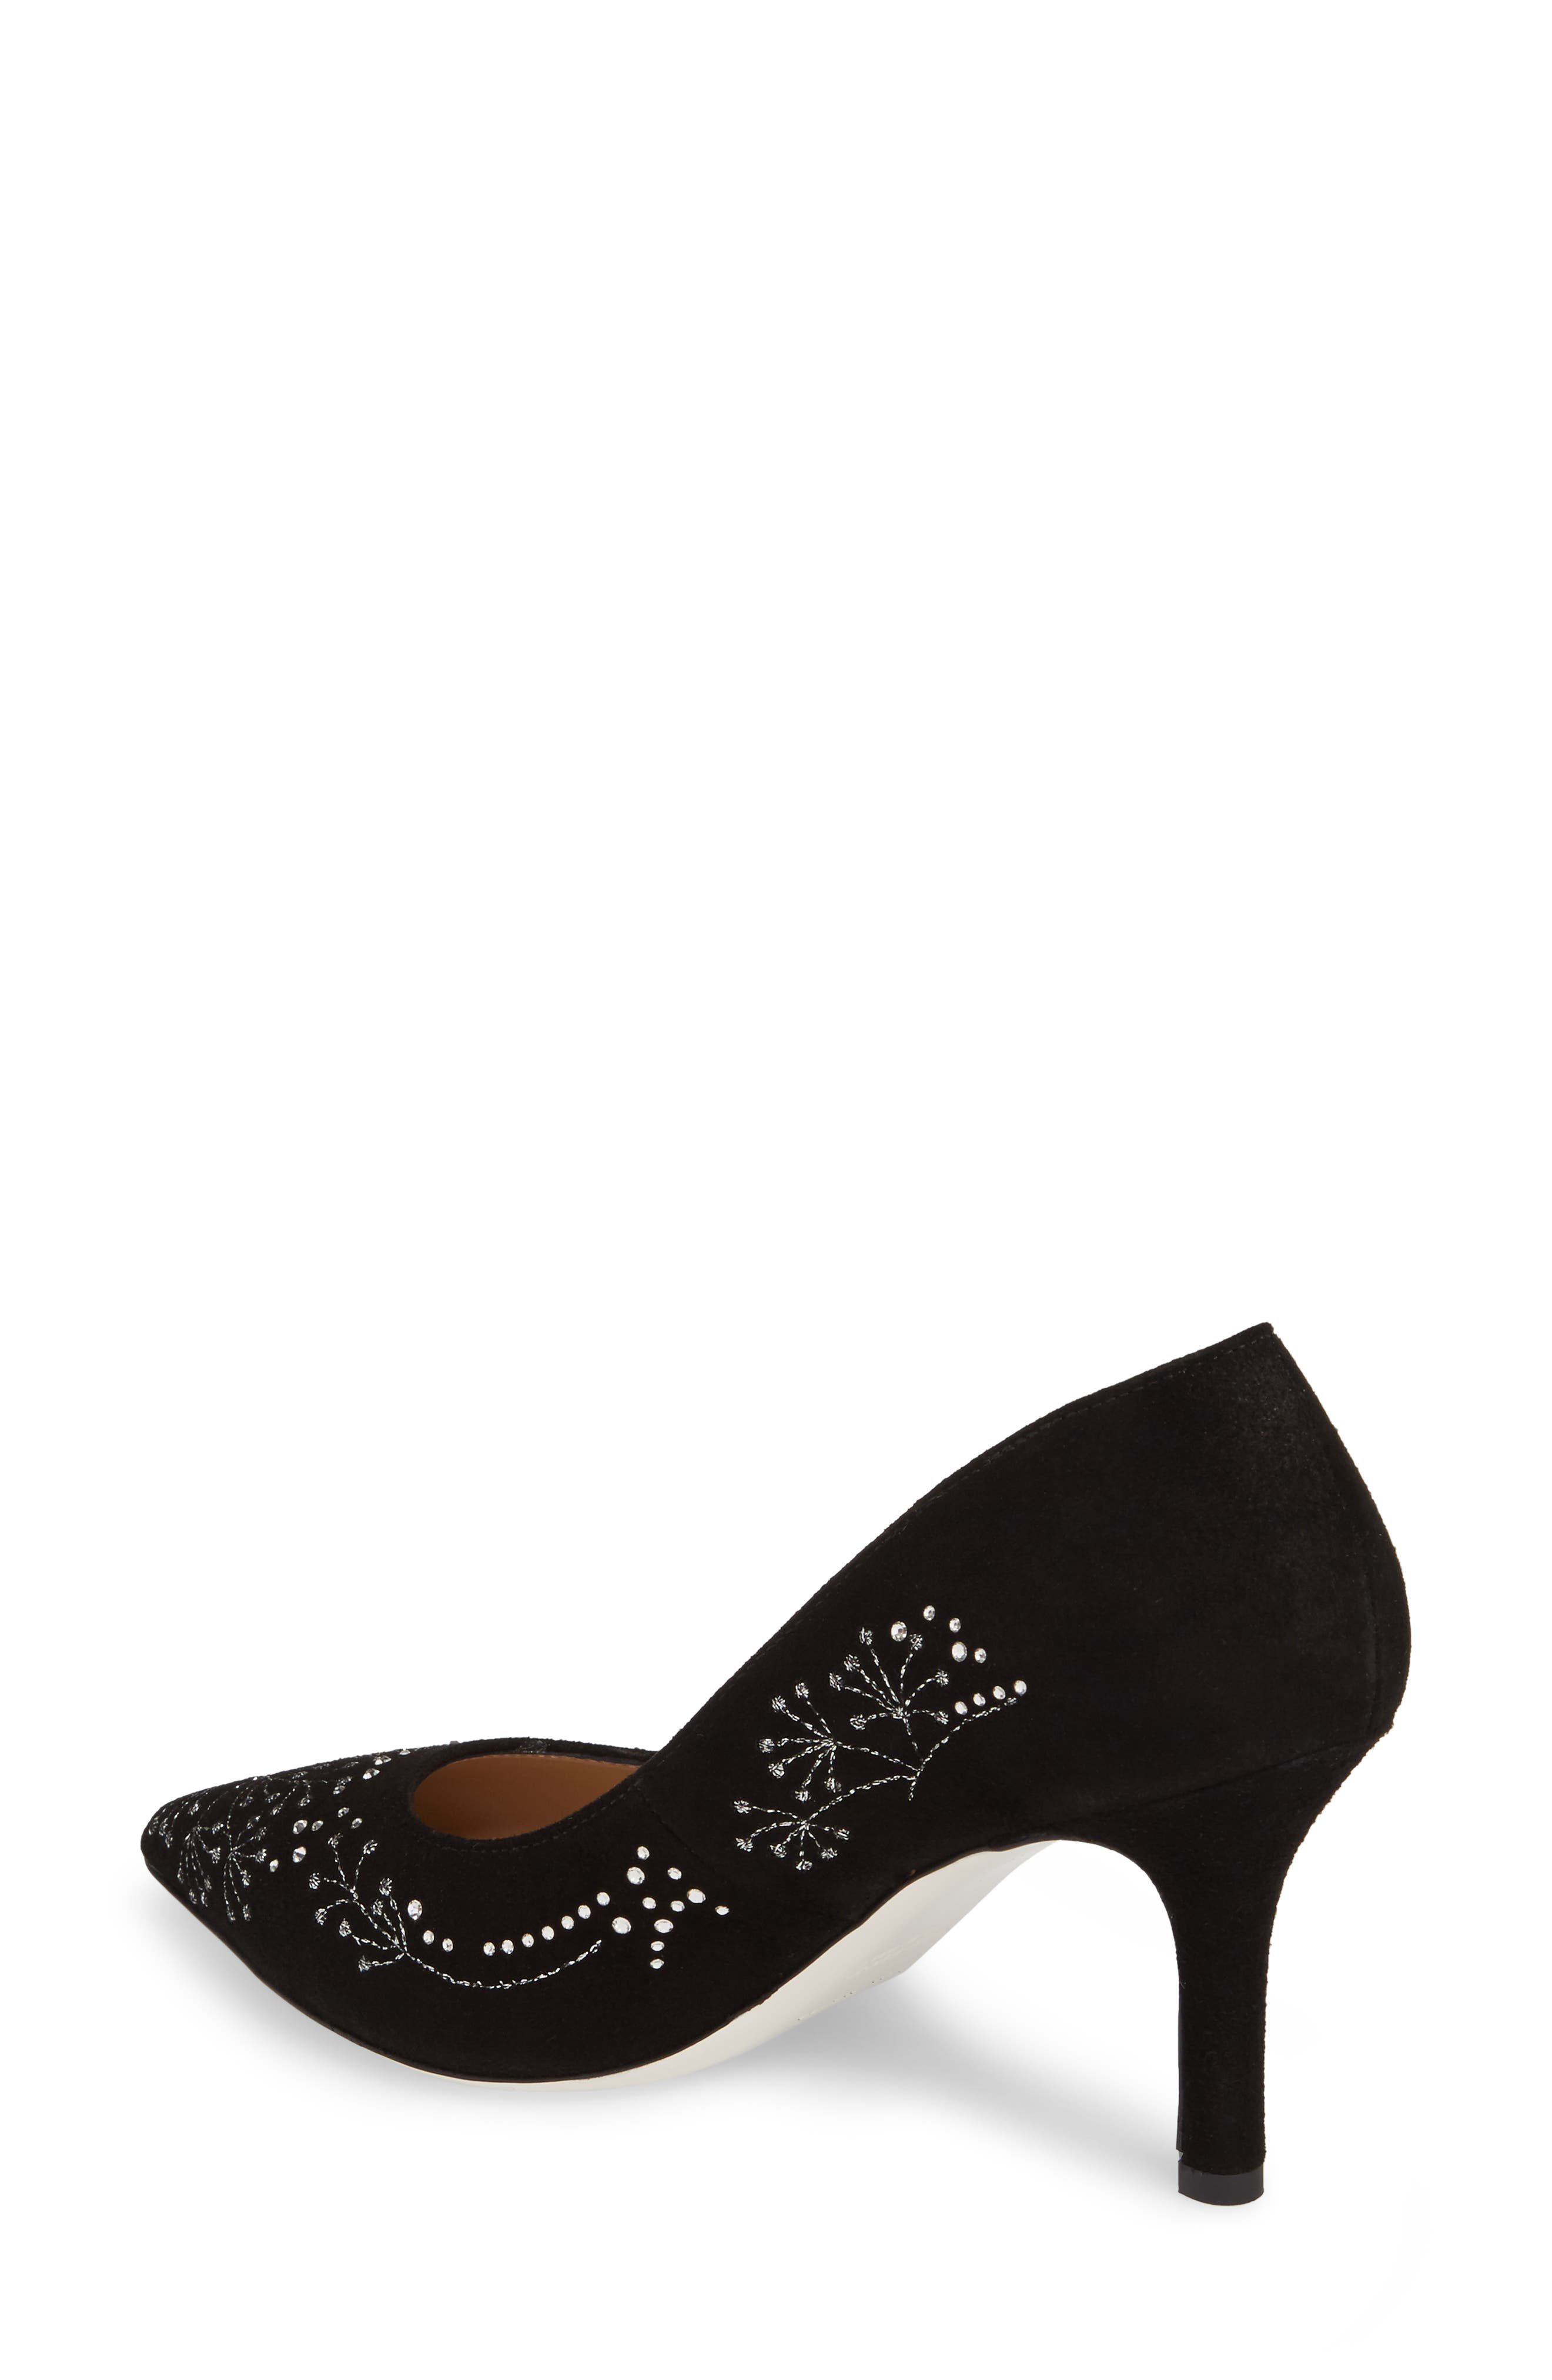 Carla Crystal Embellished Pump,                             Alternate thumbnail 2, color,                             001